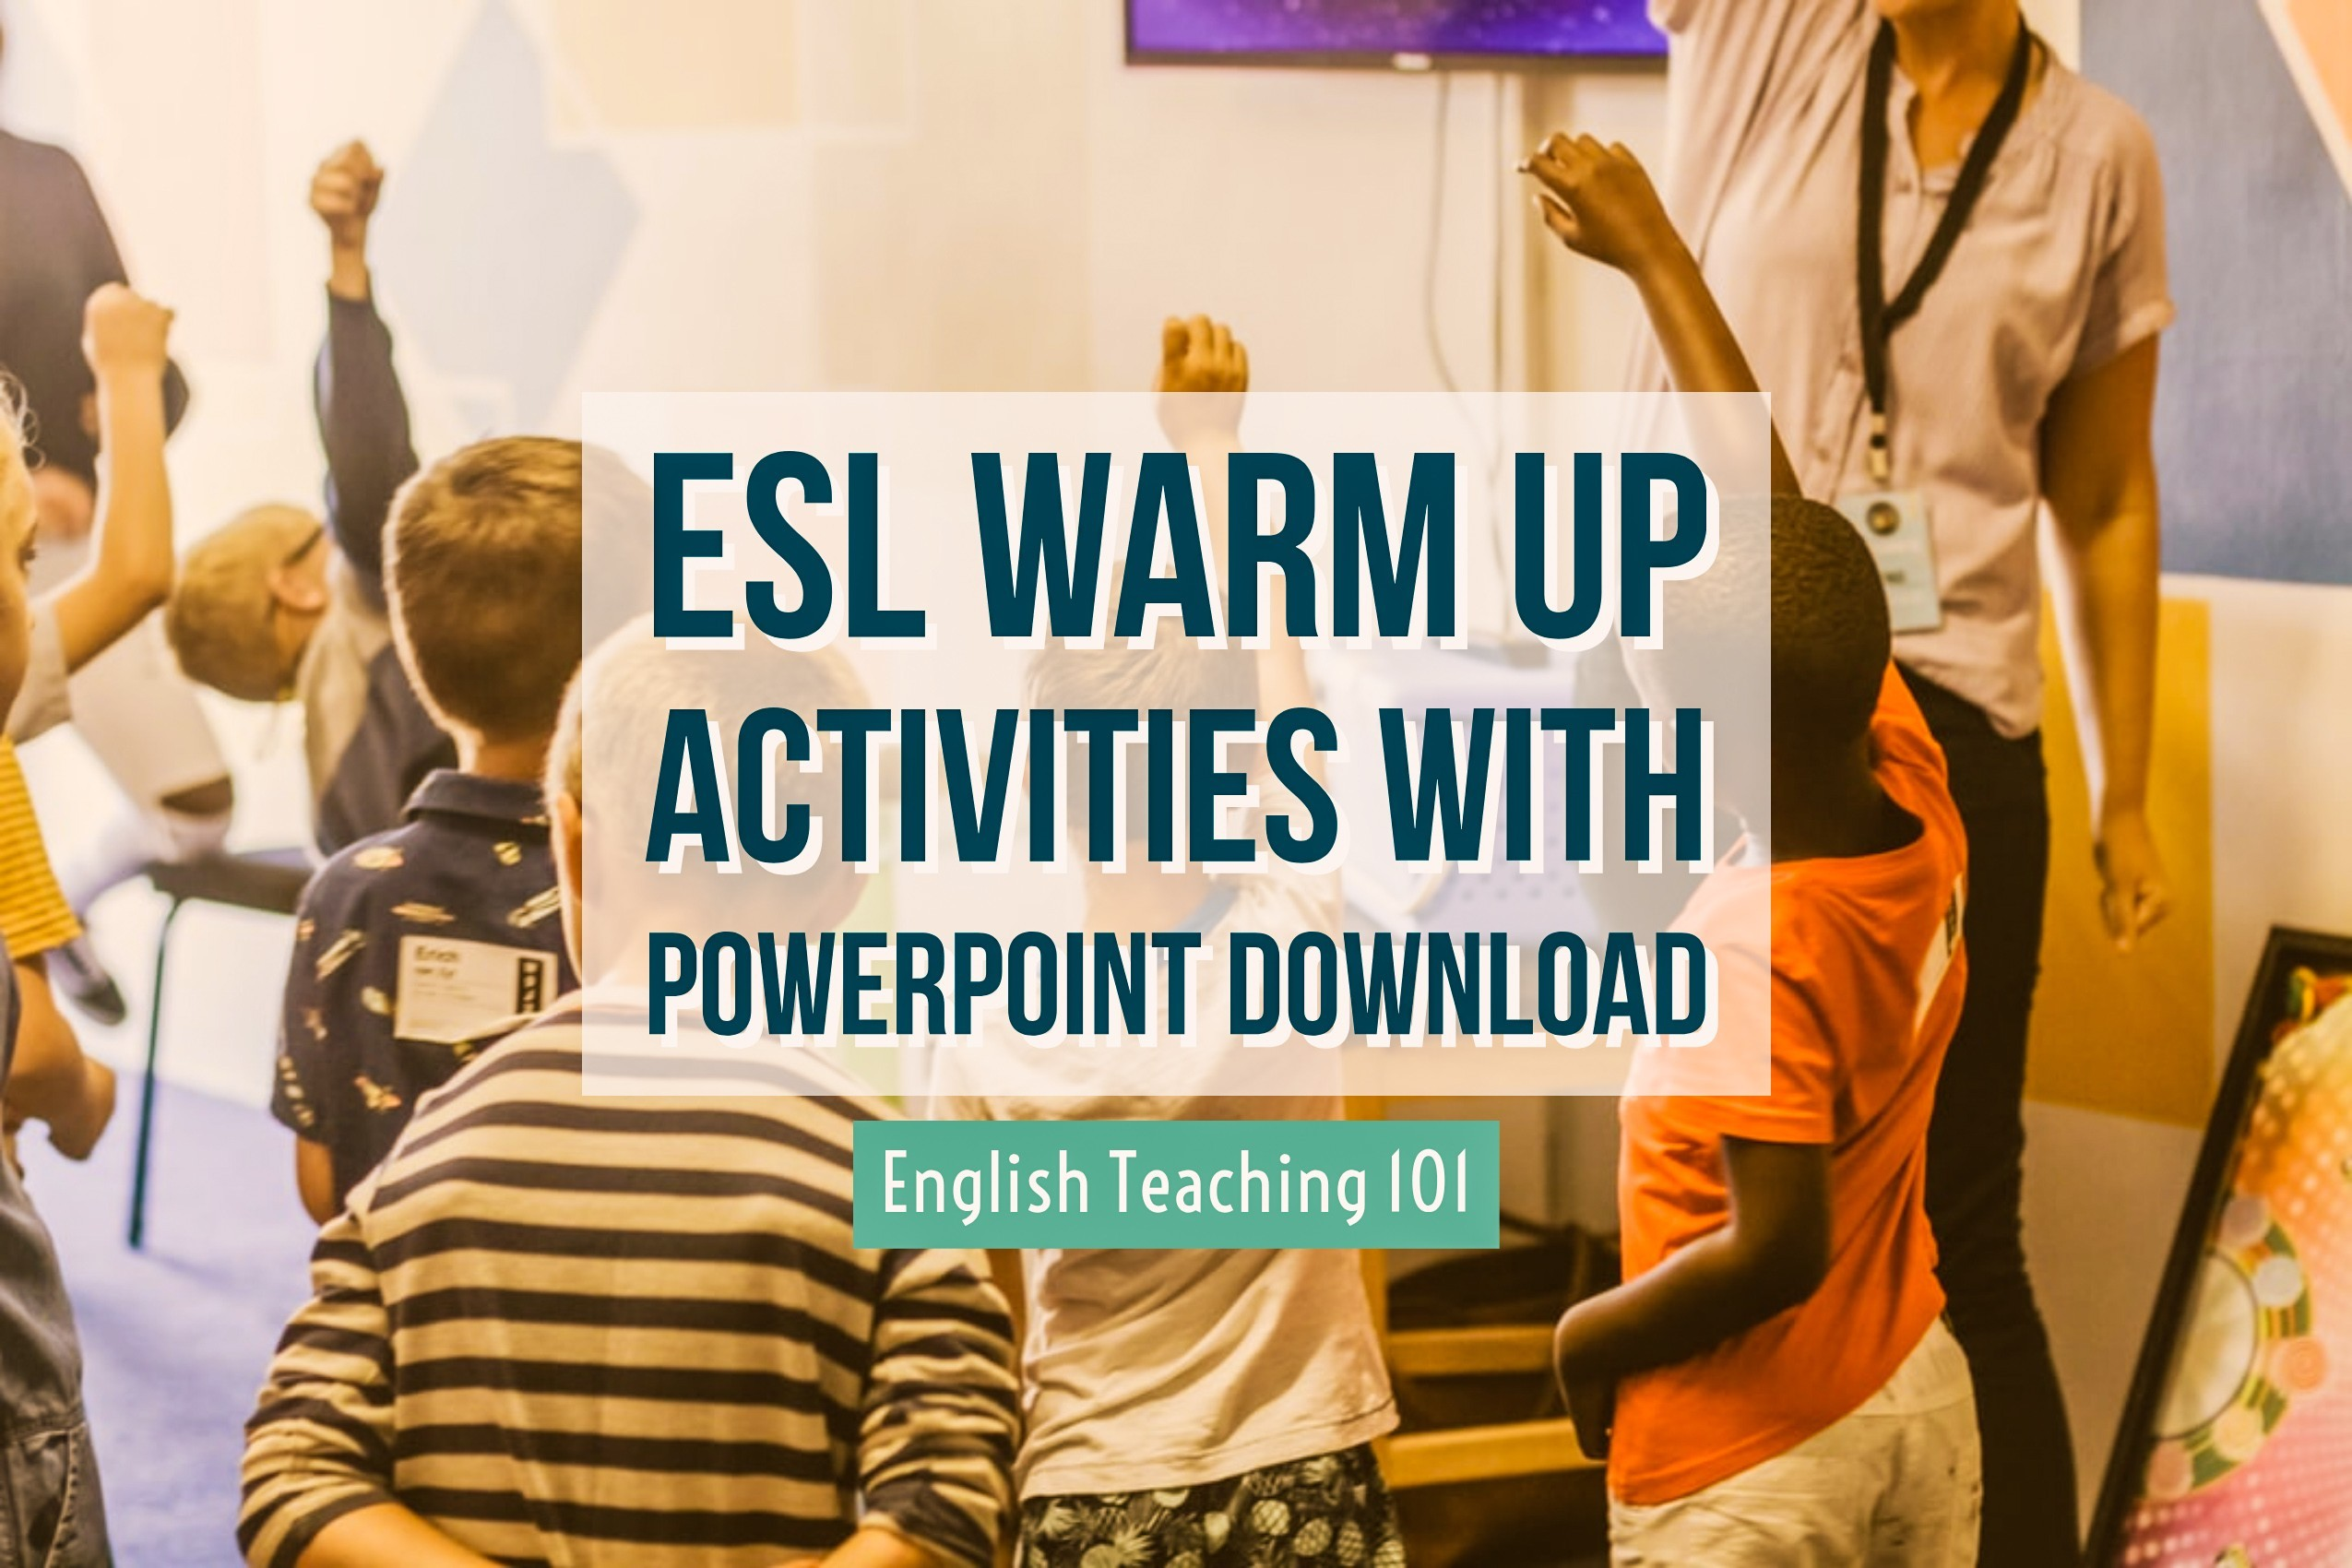 esl warm up activities with powerpoint download